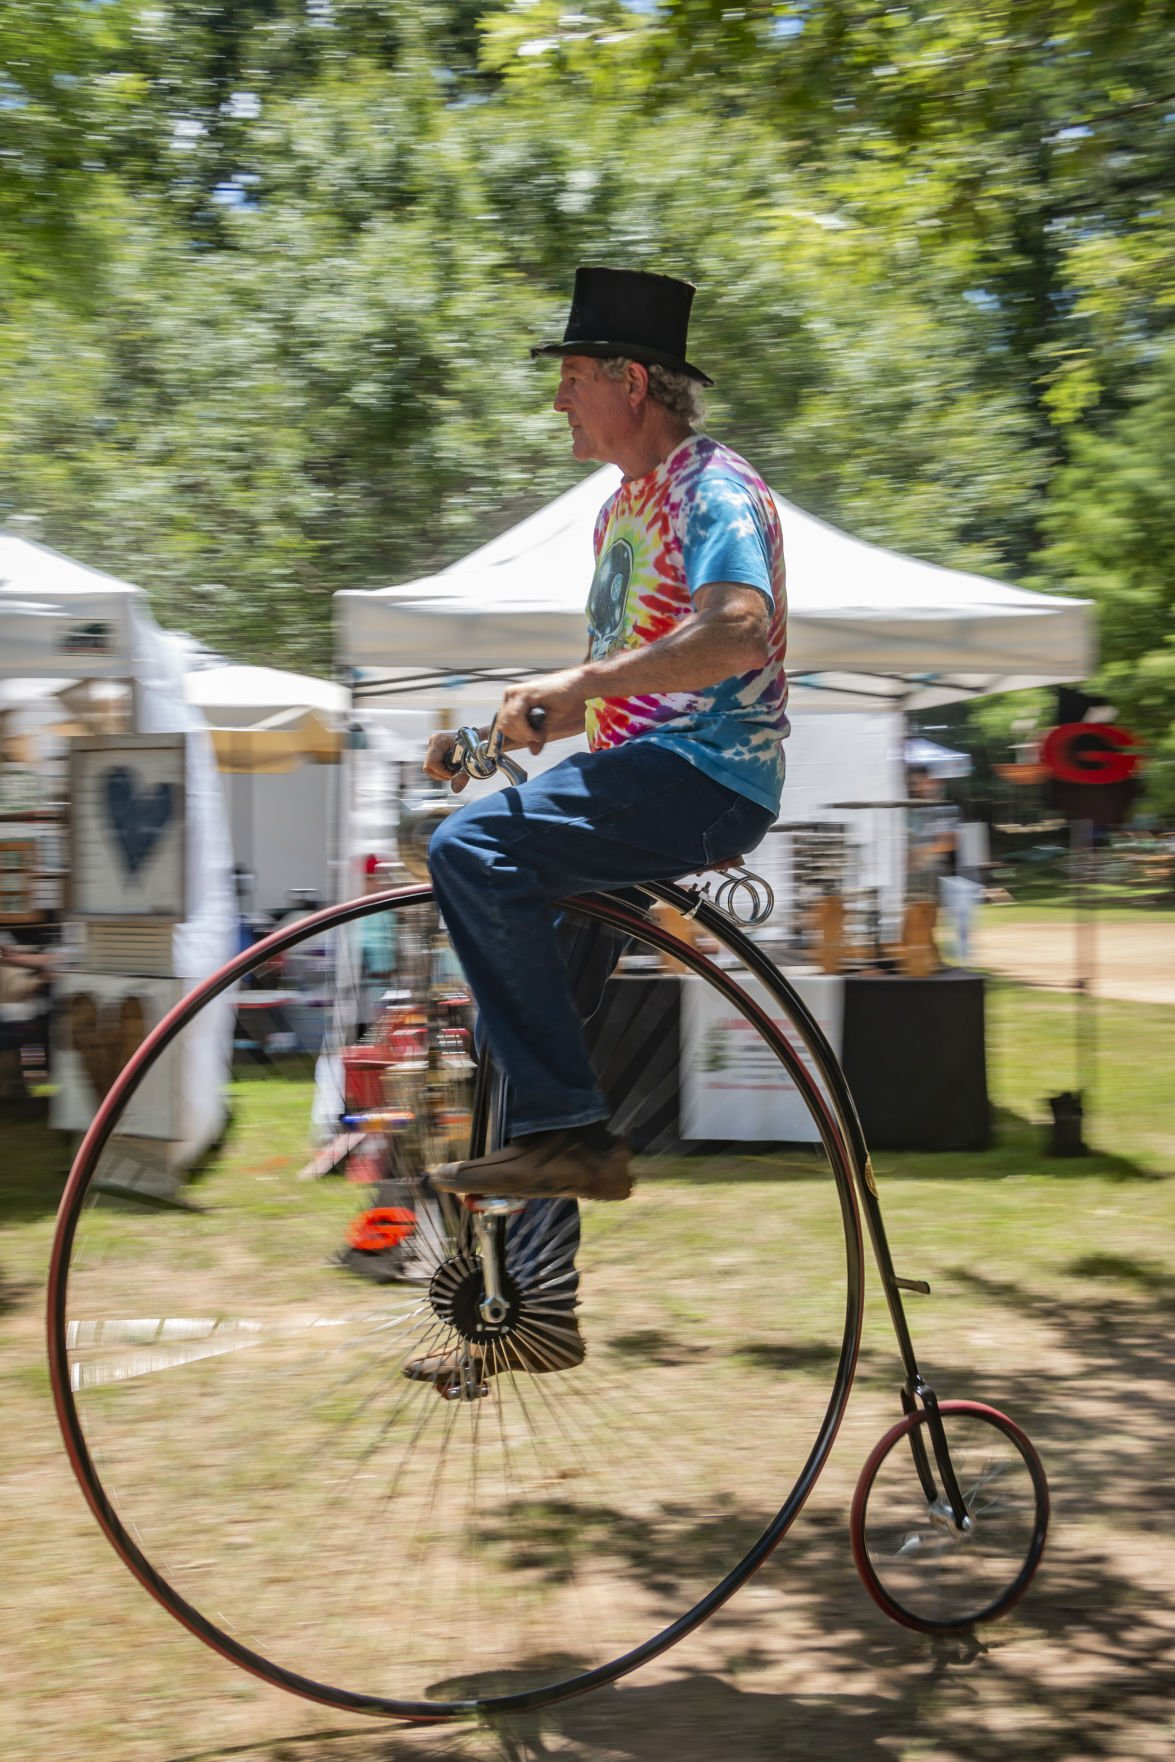 Penny farthing turns heads at antique festival